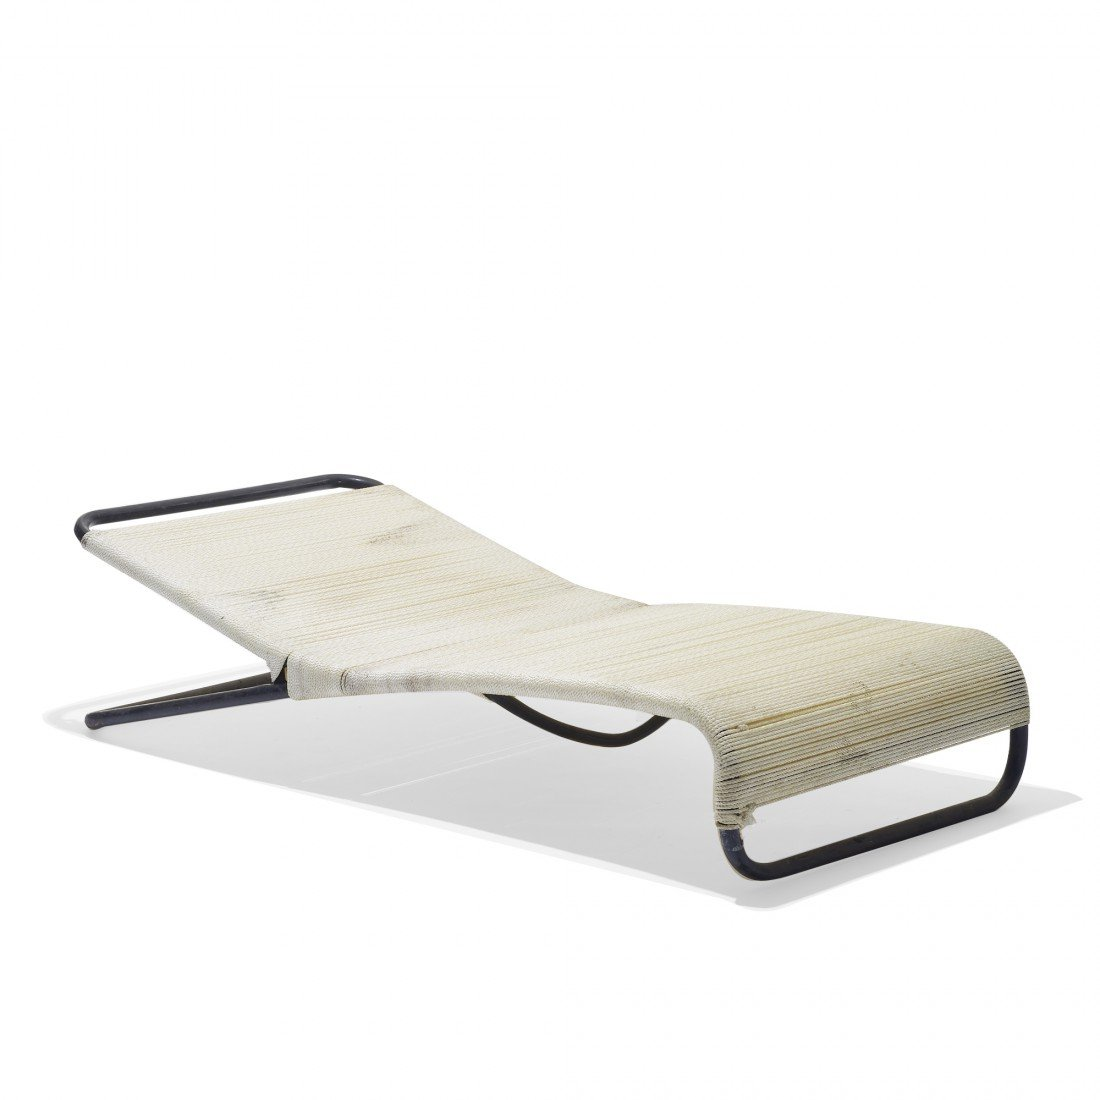 180: Van Keppel and Green Sun Chaise